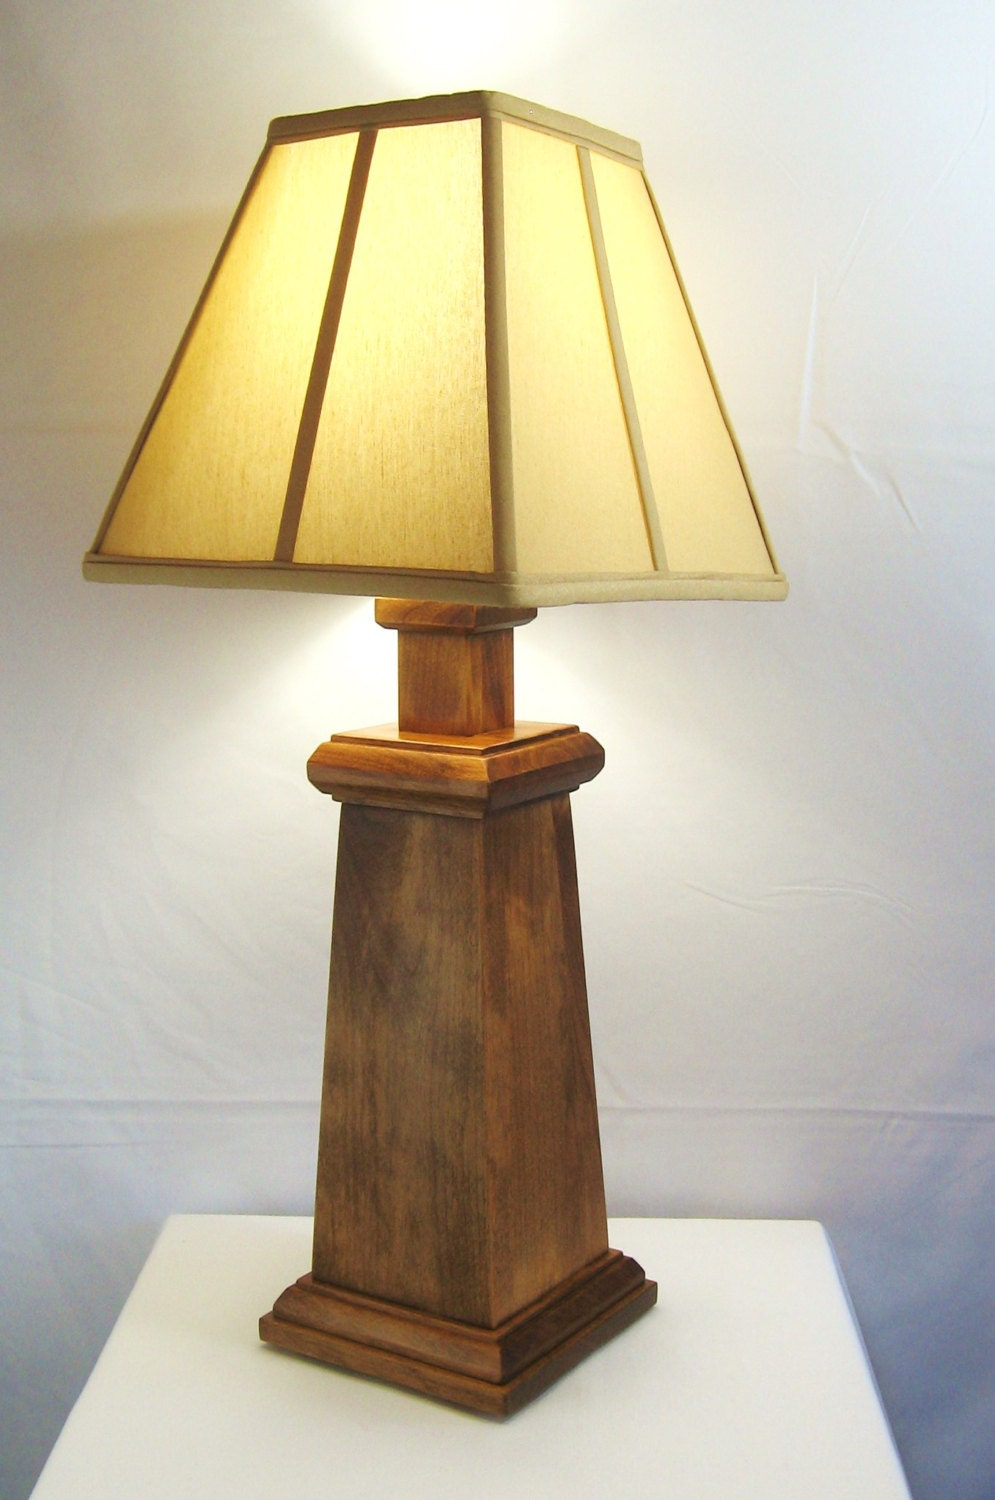 Handmade Wooden Lamps : Handmade alder wood table lamp set of mission arts